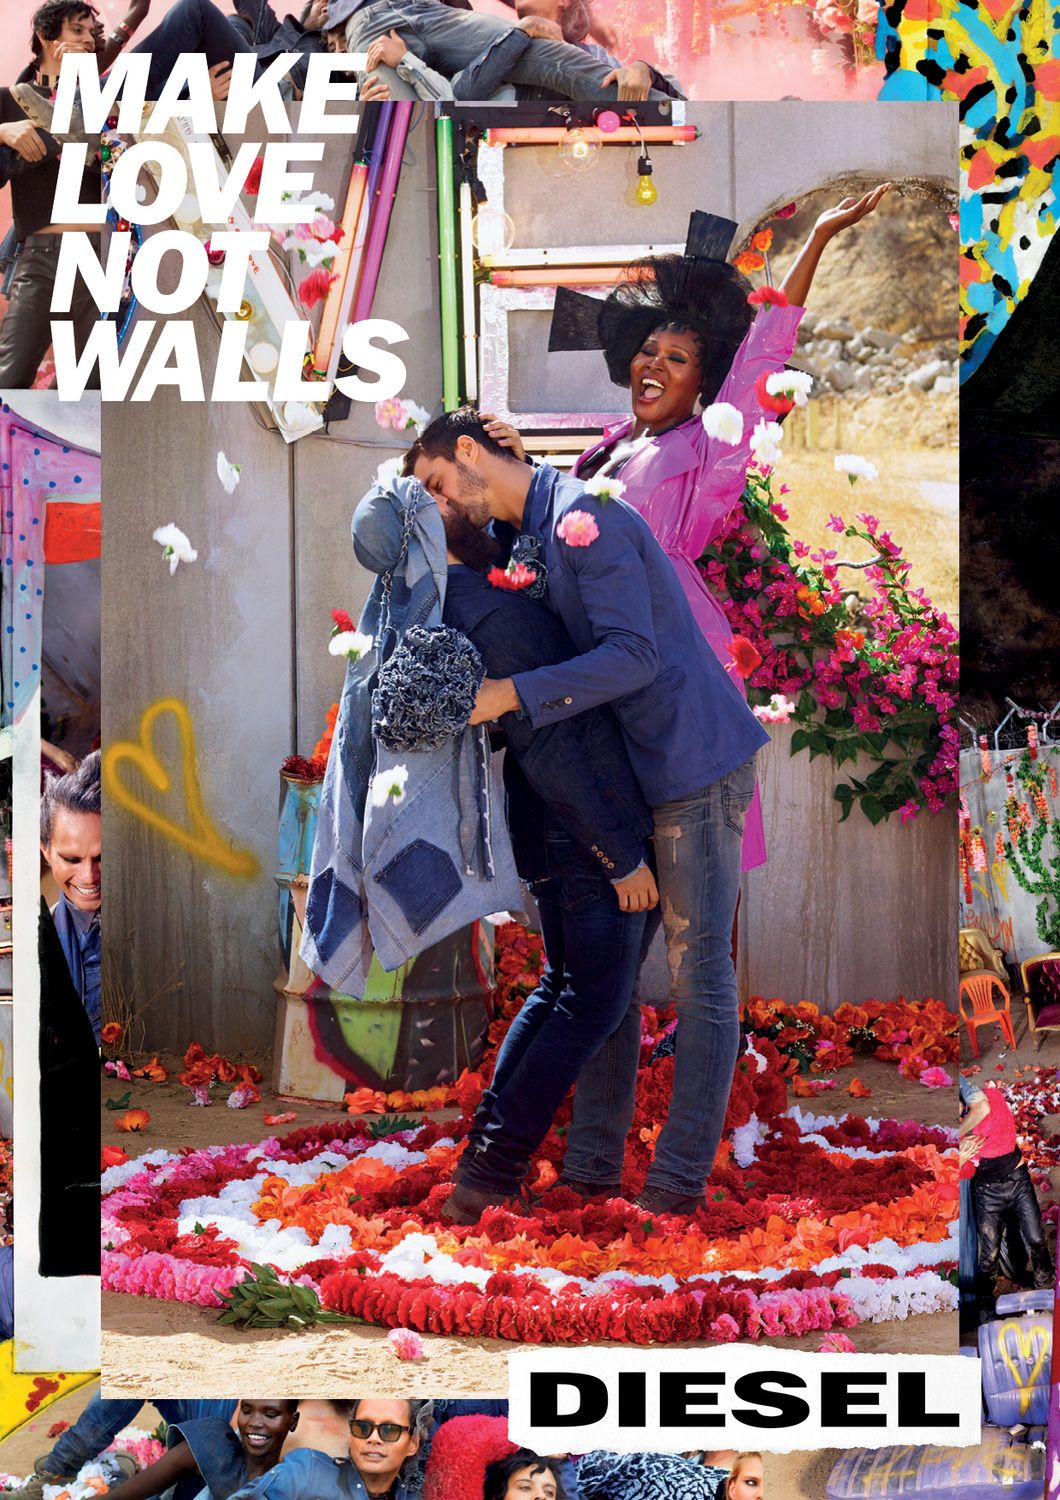 334161201 Diesel and David LaChapelle Offer Joyous Resistance With the Flamboyant  'Make Love Not Walls' Campaign – Adweek